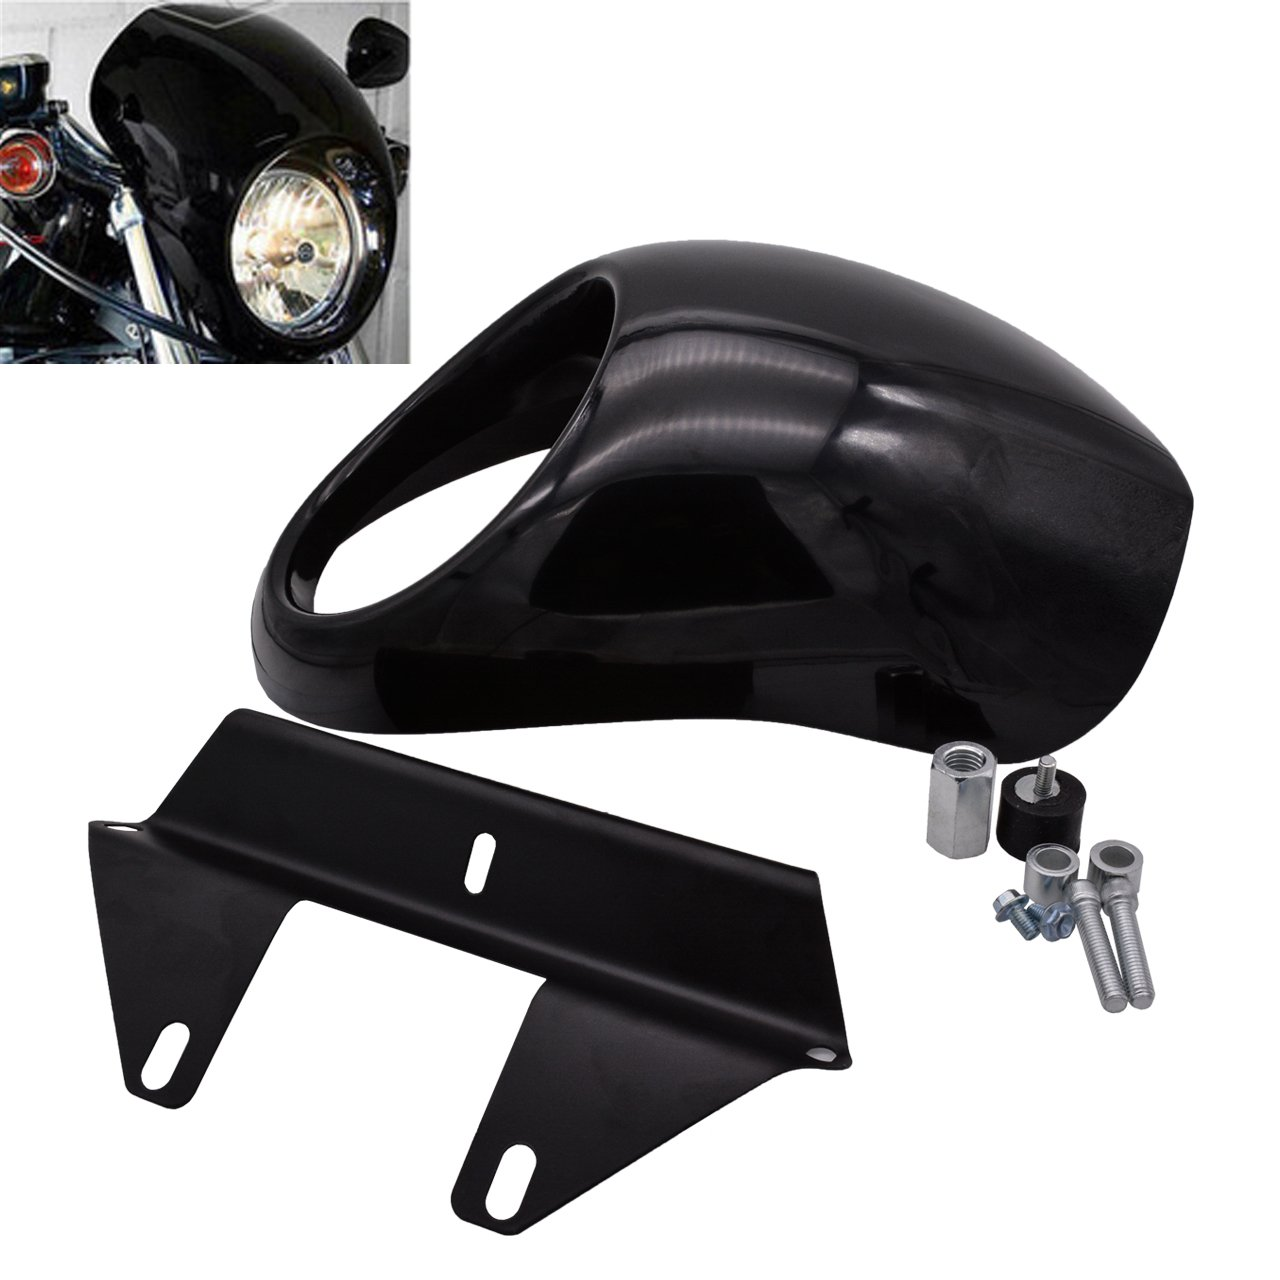 KaTur Headlight Fairing Covers Front Head Light Cowl Fork Mount Headlamp Visor Bracket Kit for 1973 up Harley Sportster Cafe Drag Dyna FX XL